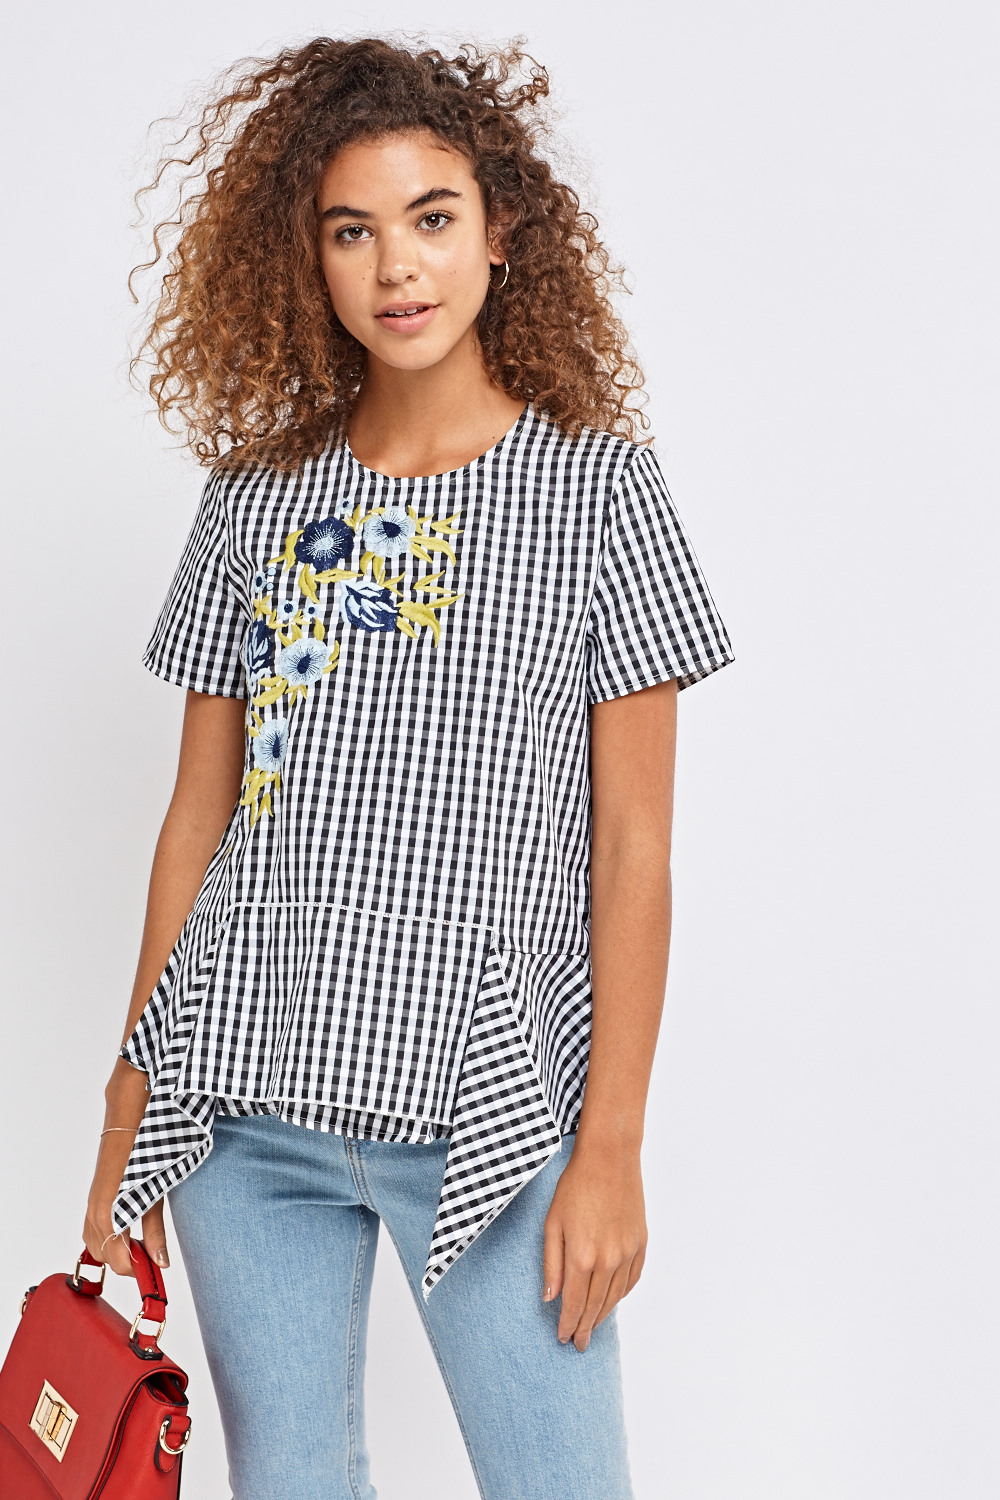 Gingham Peplum Top With Flower Embroidered Front Blackmulti Just 5